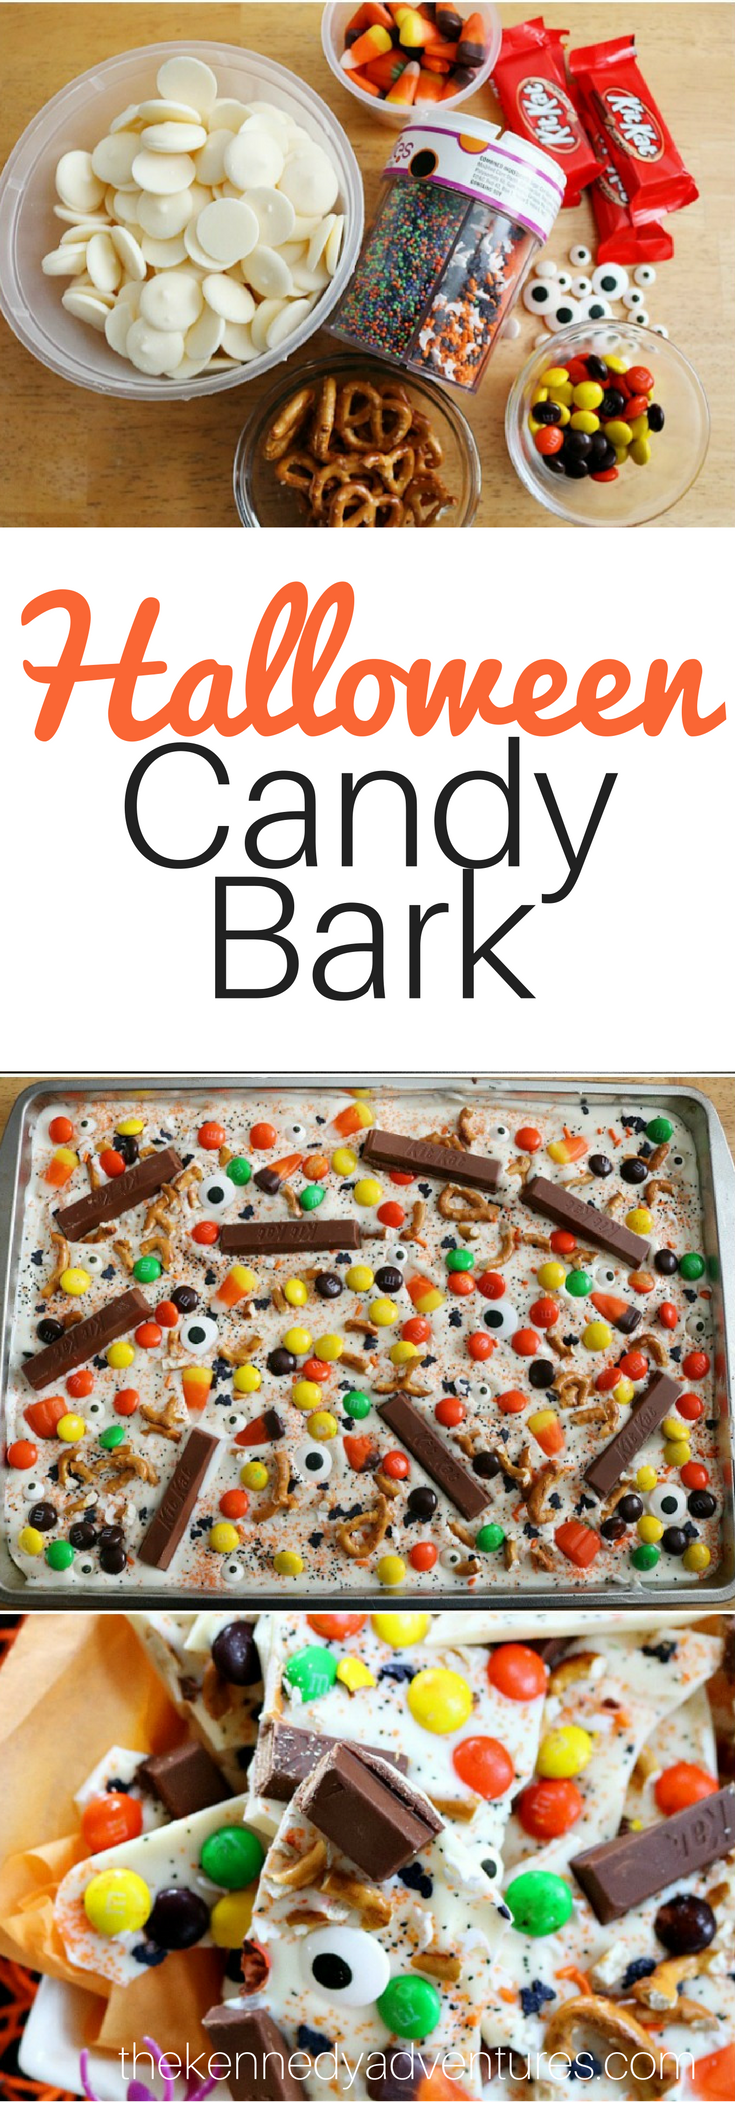 Halloween candy bark - perfect for your next spooky party!